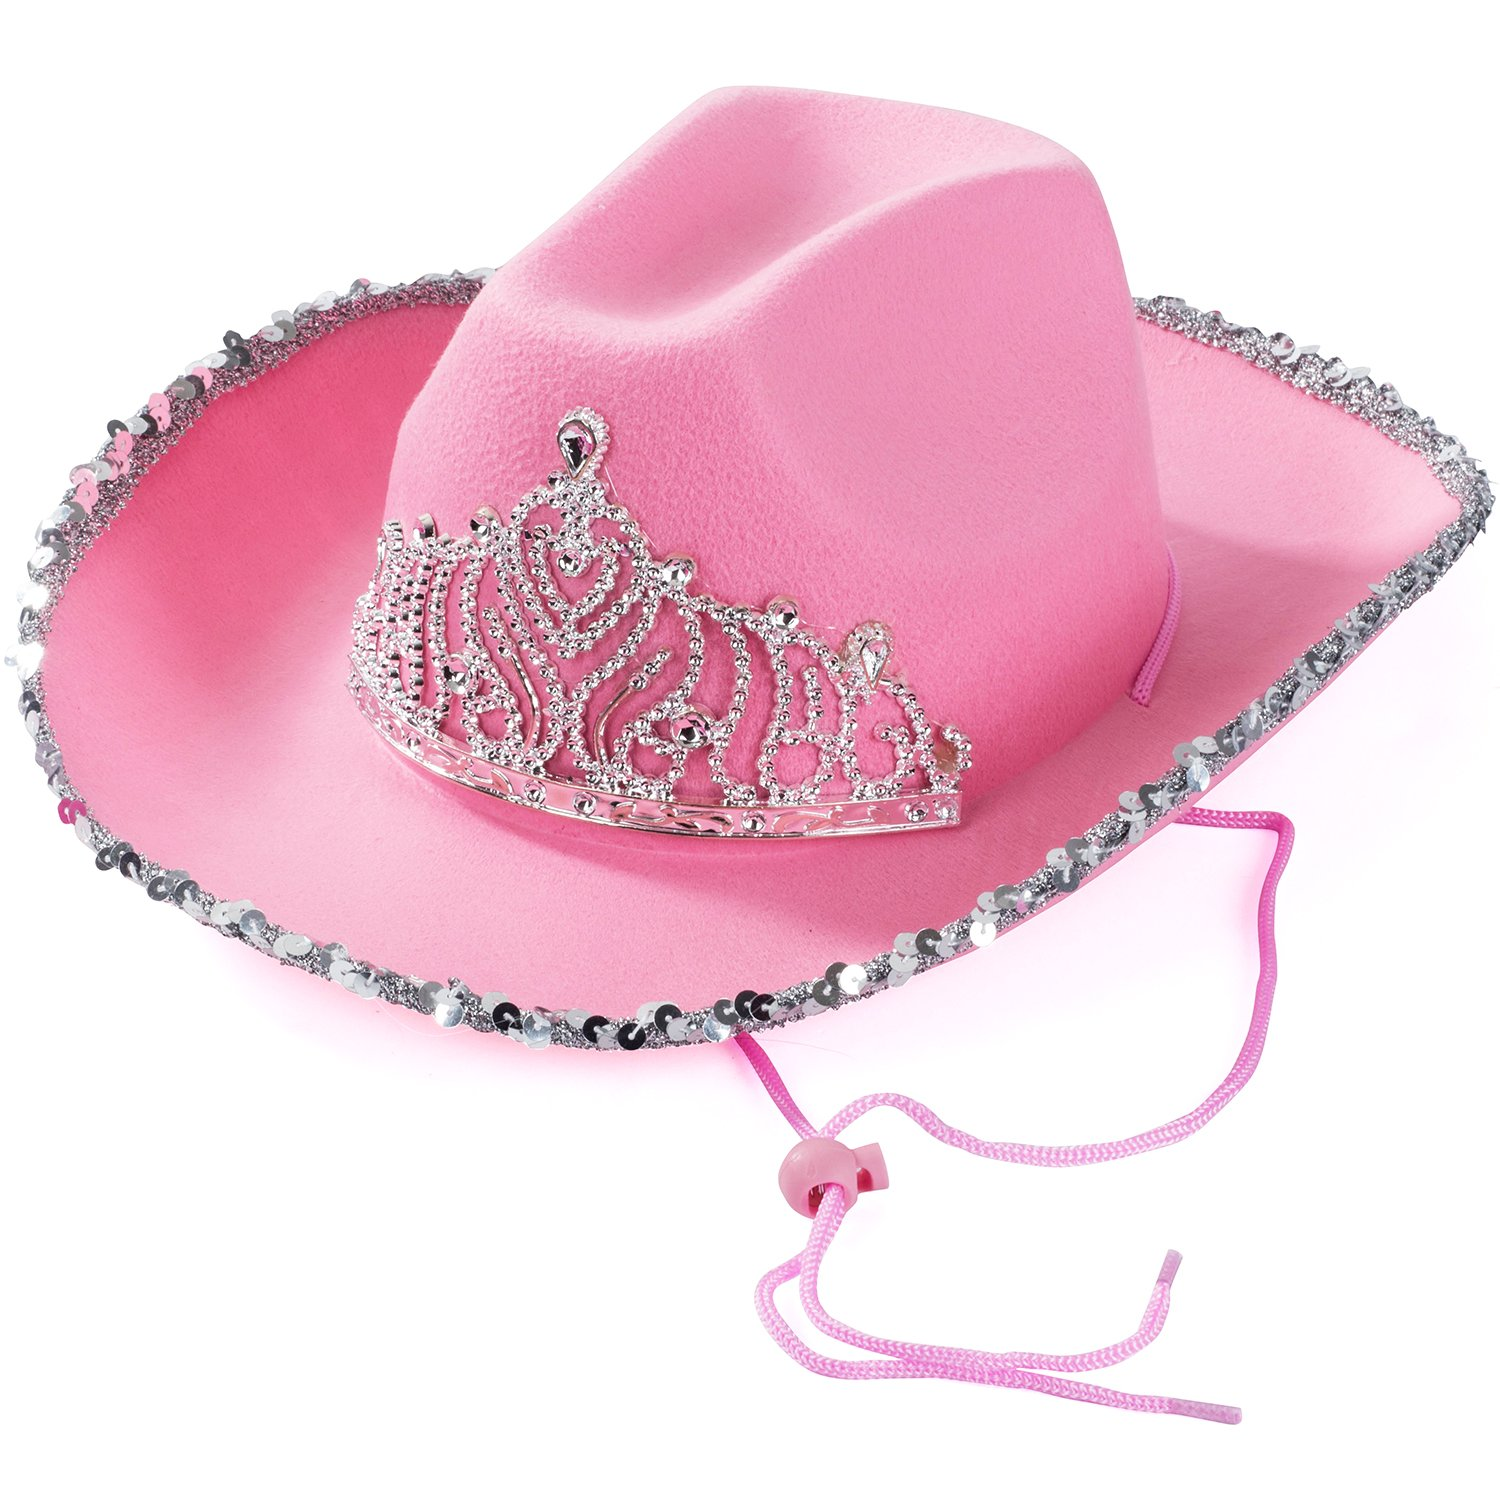 Amazon.com: Cowgirl Hat - Princess Cowboy Hats for Women by Funny ...